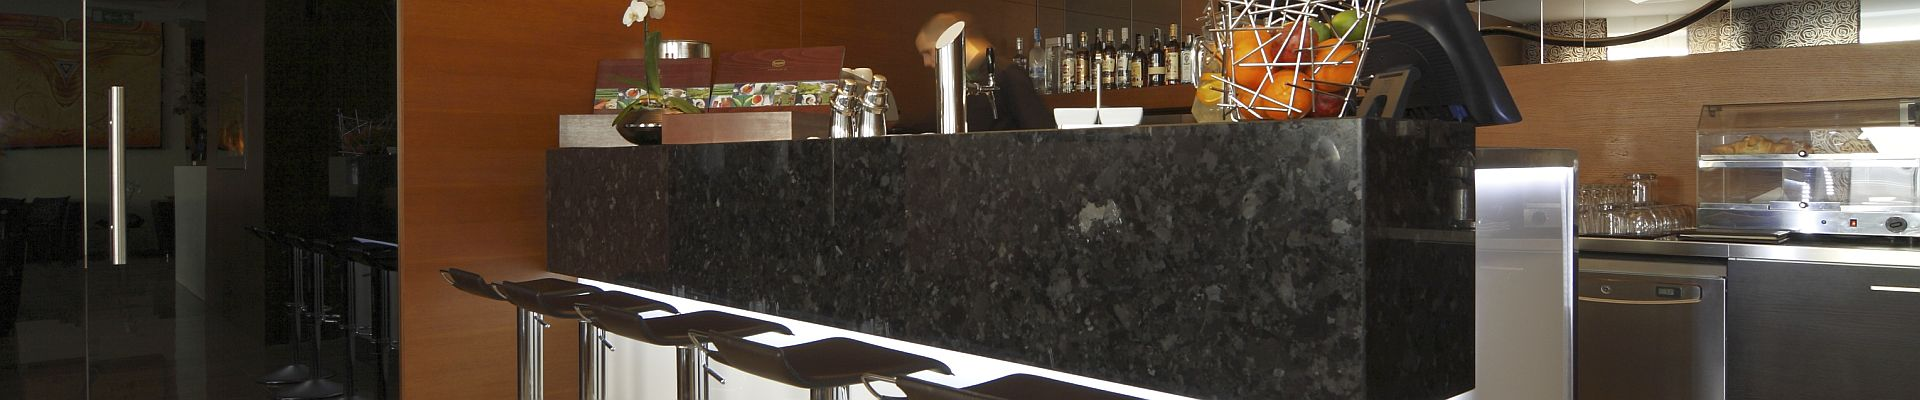 Lobby Bar Business Hotel Mikado Nitra